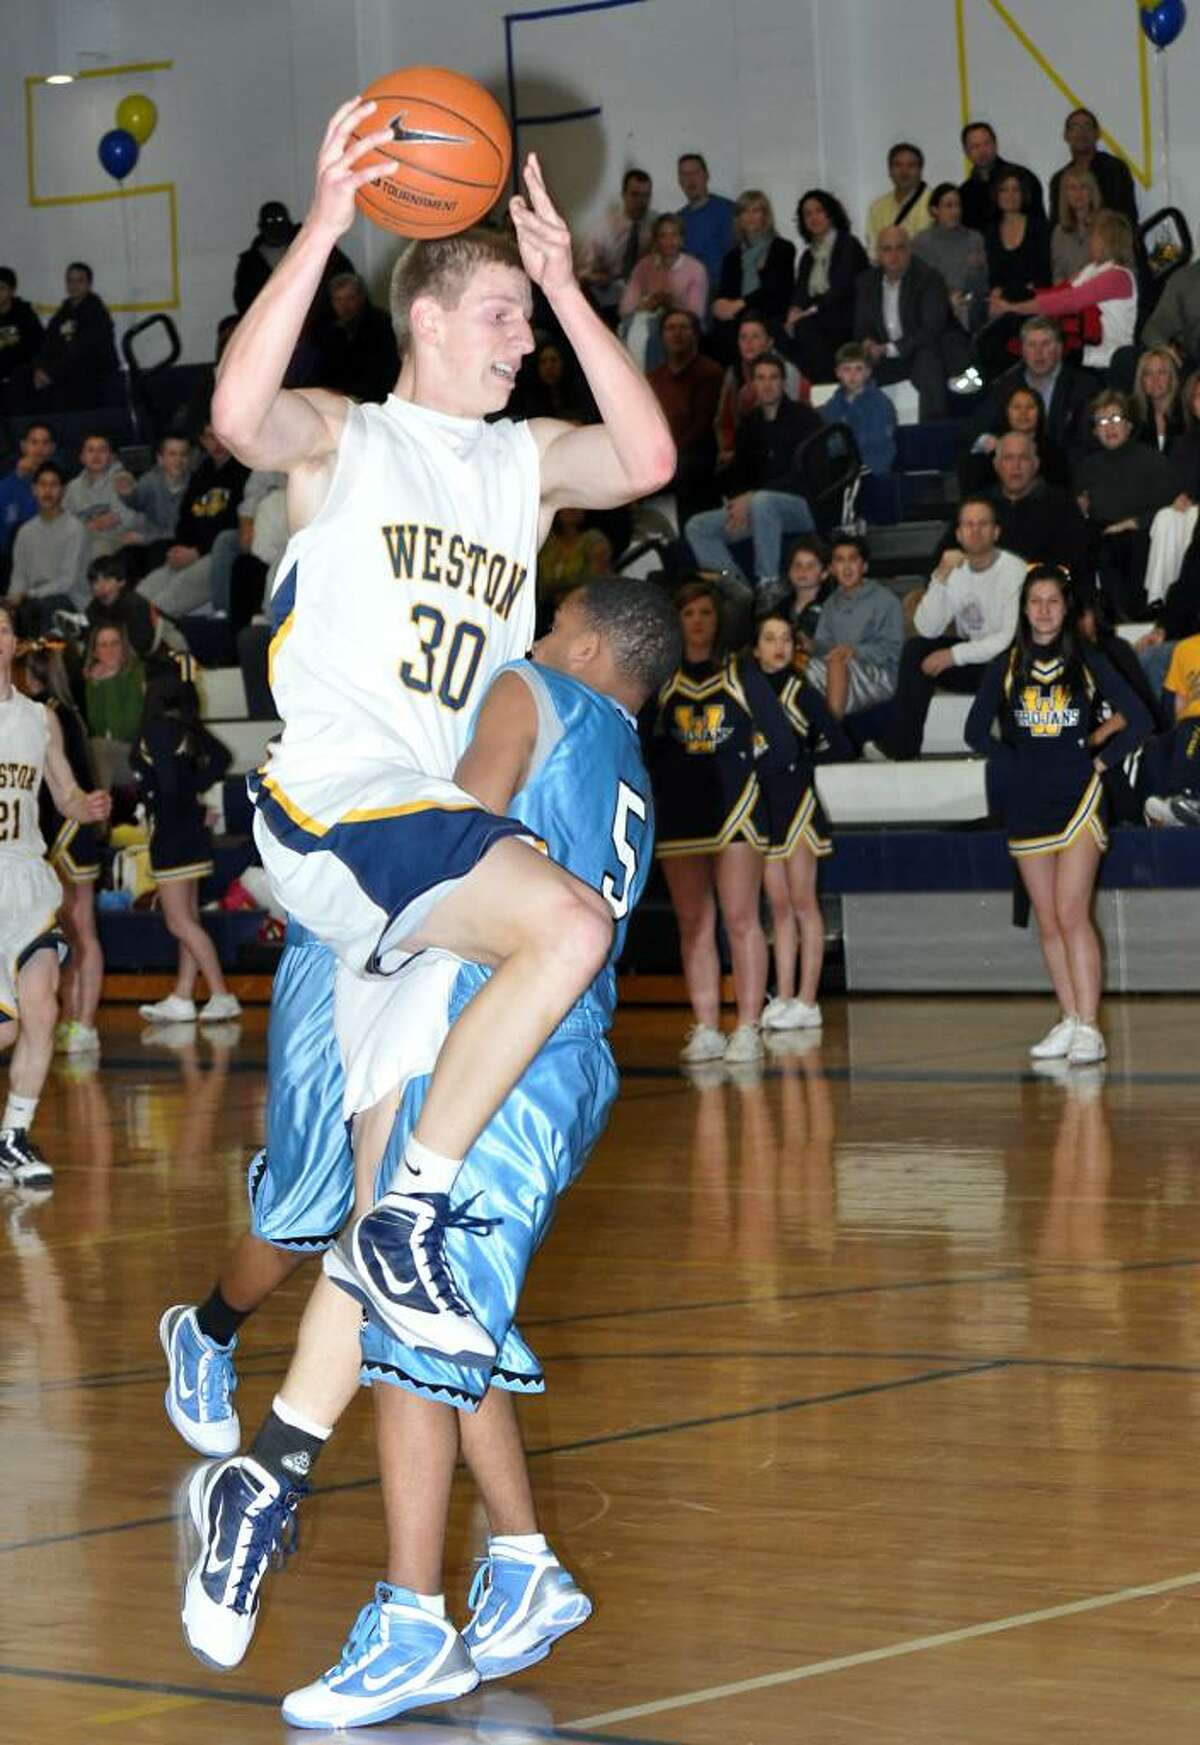 Weston's Dennis Levene collides with a Kolbe Cathedral defender as he attempts a shot during the second period of Monday's boys basketball game at Weston High School.